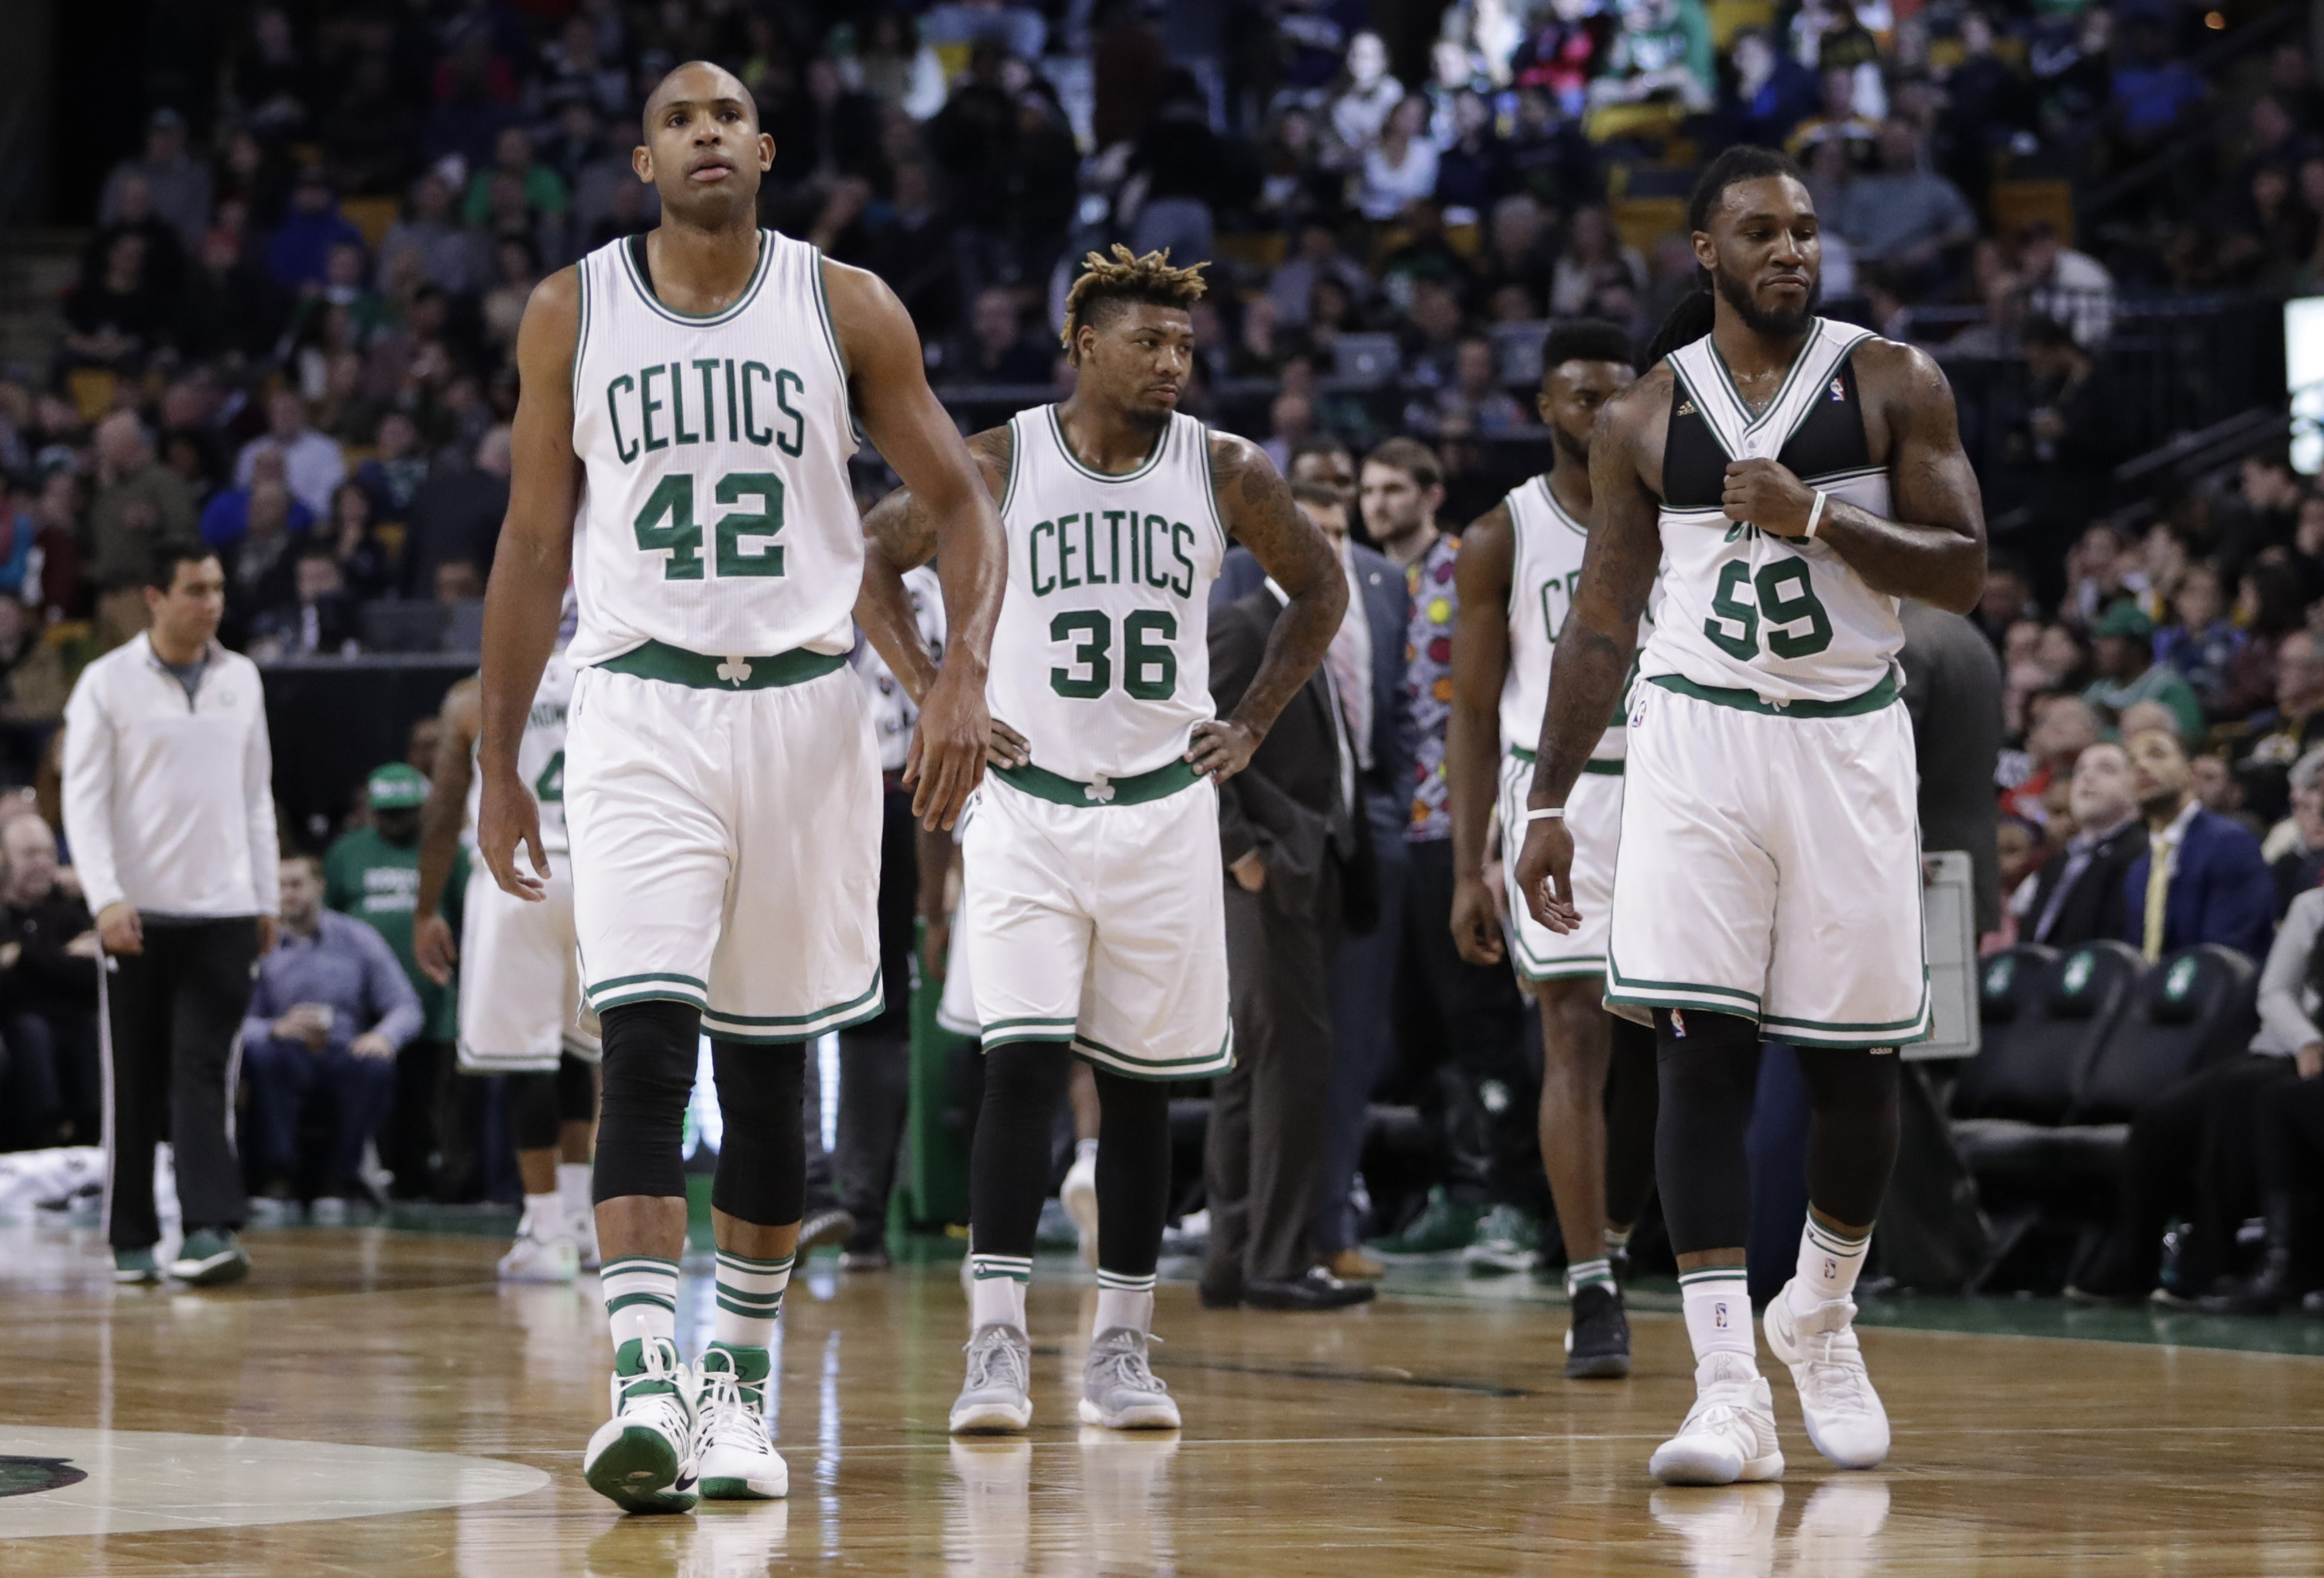 Dec 16, 2016; Boston, MA, USA; Boston Celtics center Al Horford (42), guard Marcus Smart (36) and forward Jae Crowder (99) on the court during a break in the action against the Charlotte Hornets in the second quarter at TD Garden. Mandatory Credit: David Butler II-USA TODAY Sports